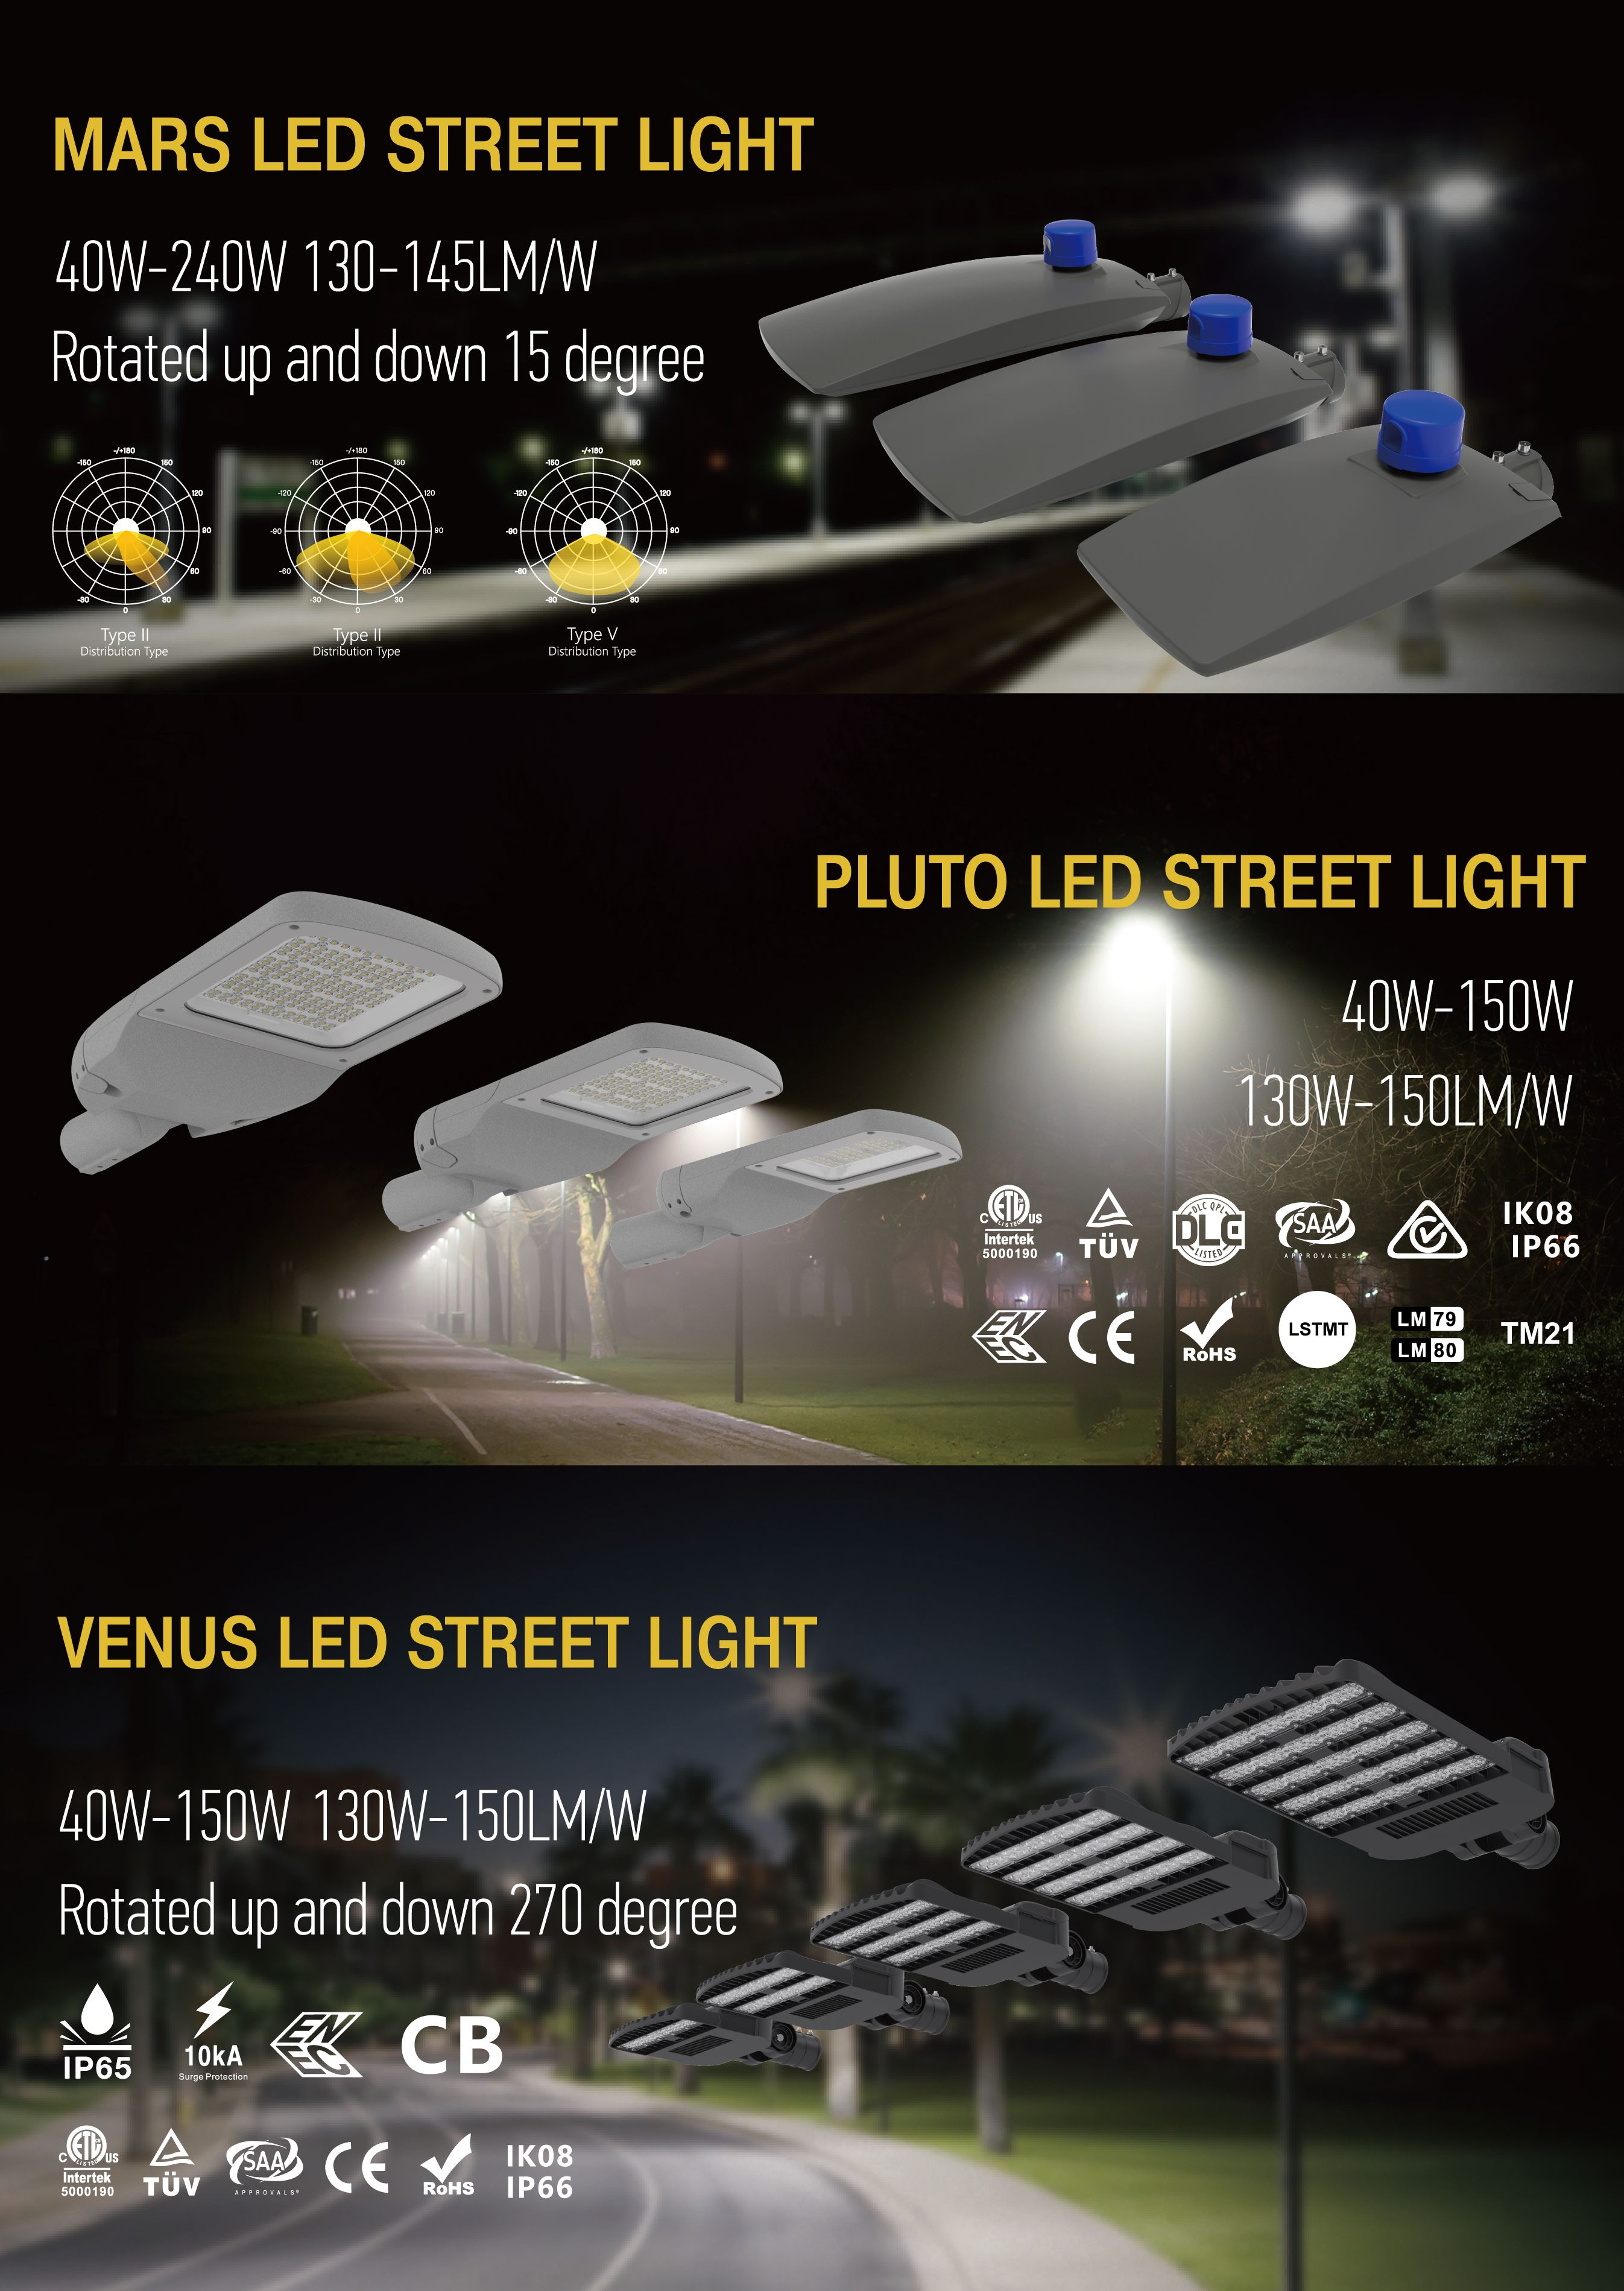 Led Lighting With Images High